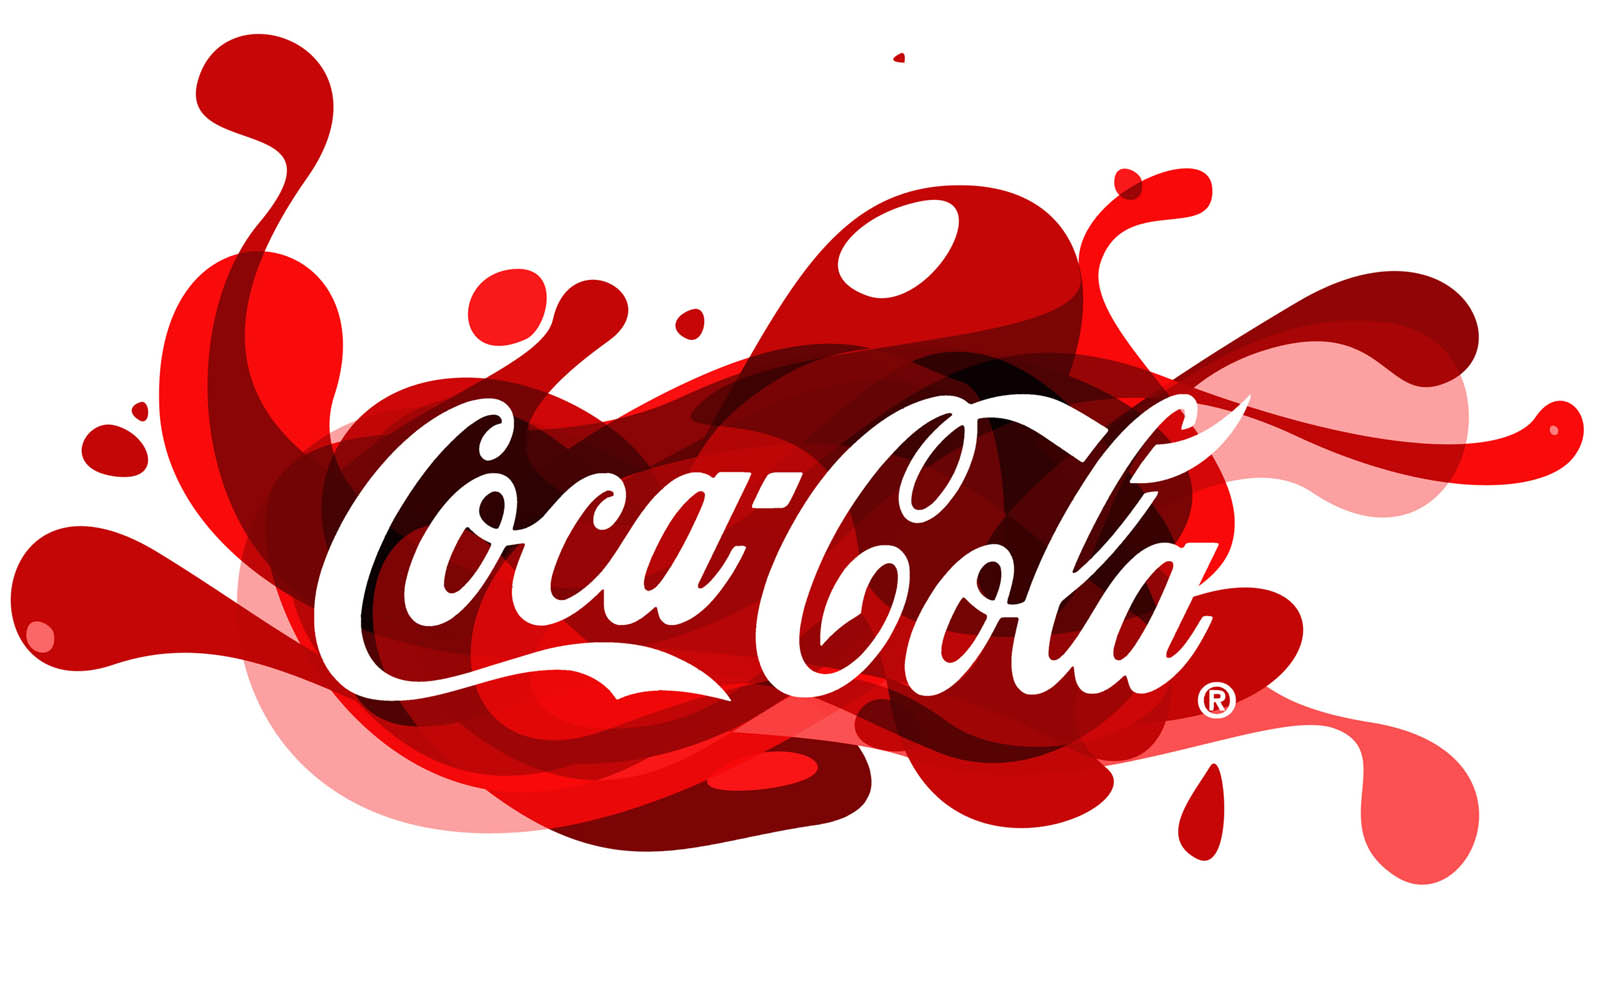 Tag Coca Cola Wallpapers Backgrounds Paos Images And Pictures For Free